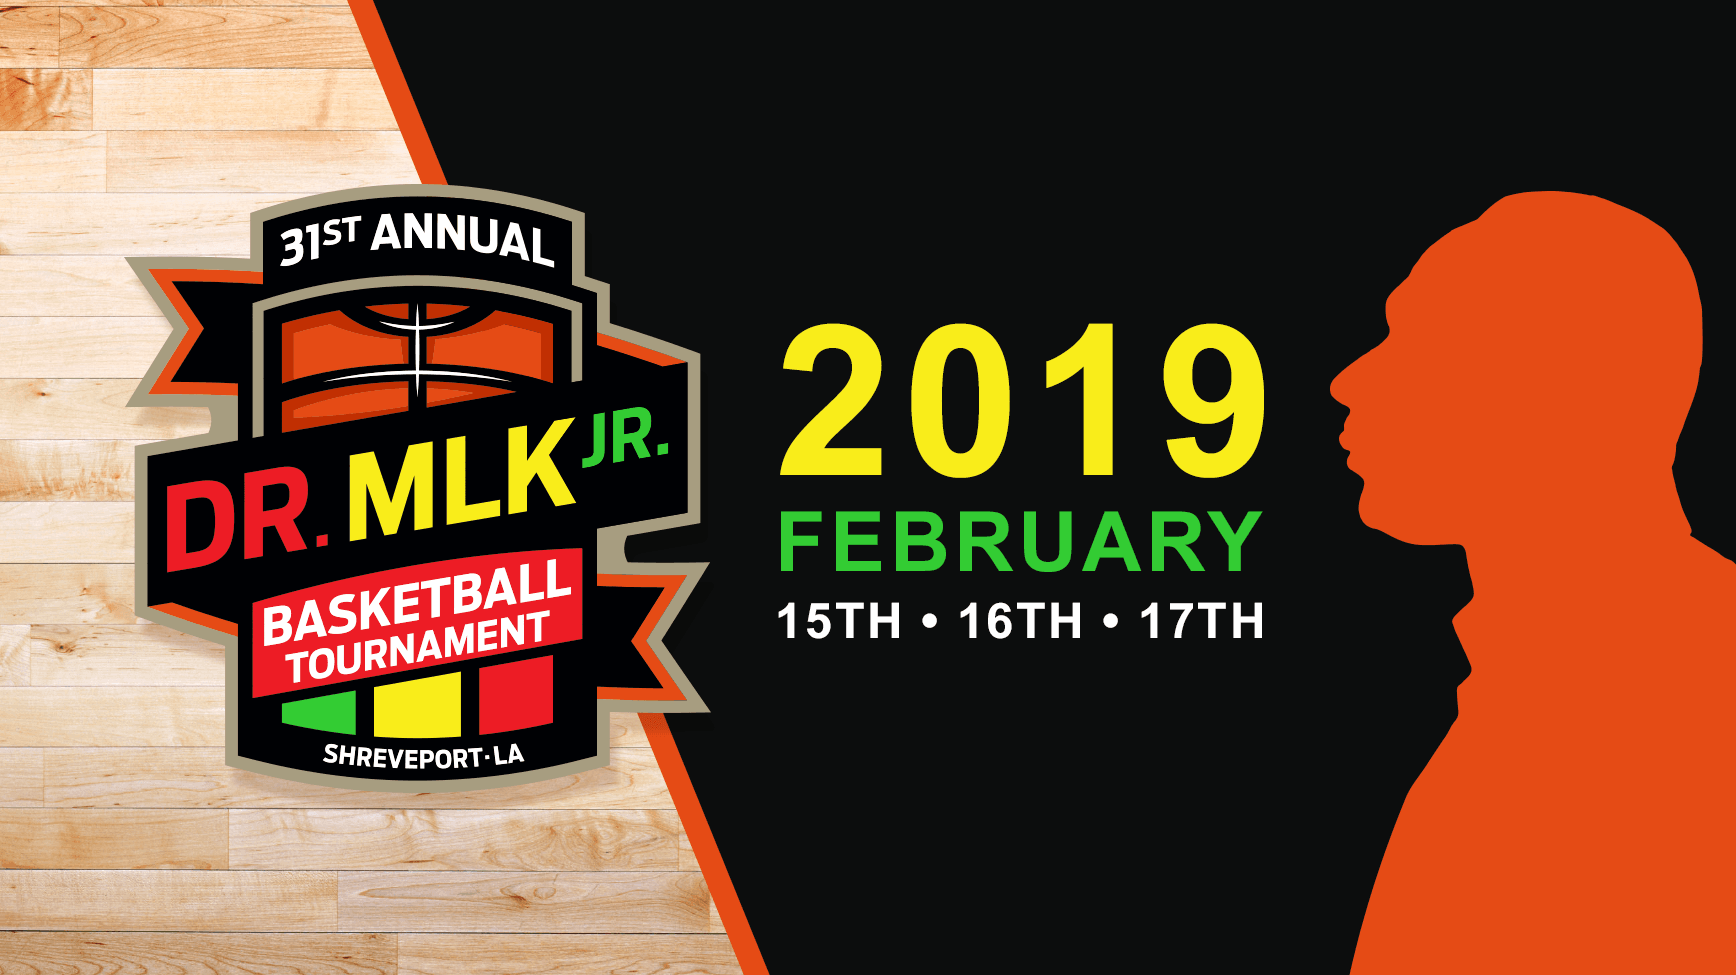 31st Annual Dr. MLK Jr. Basketball Tournament